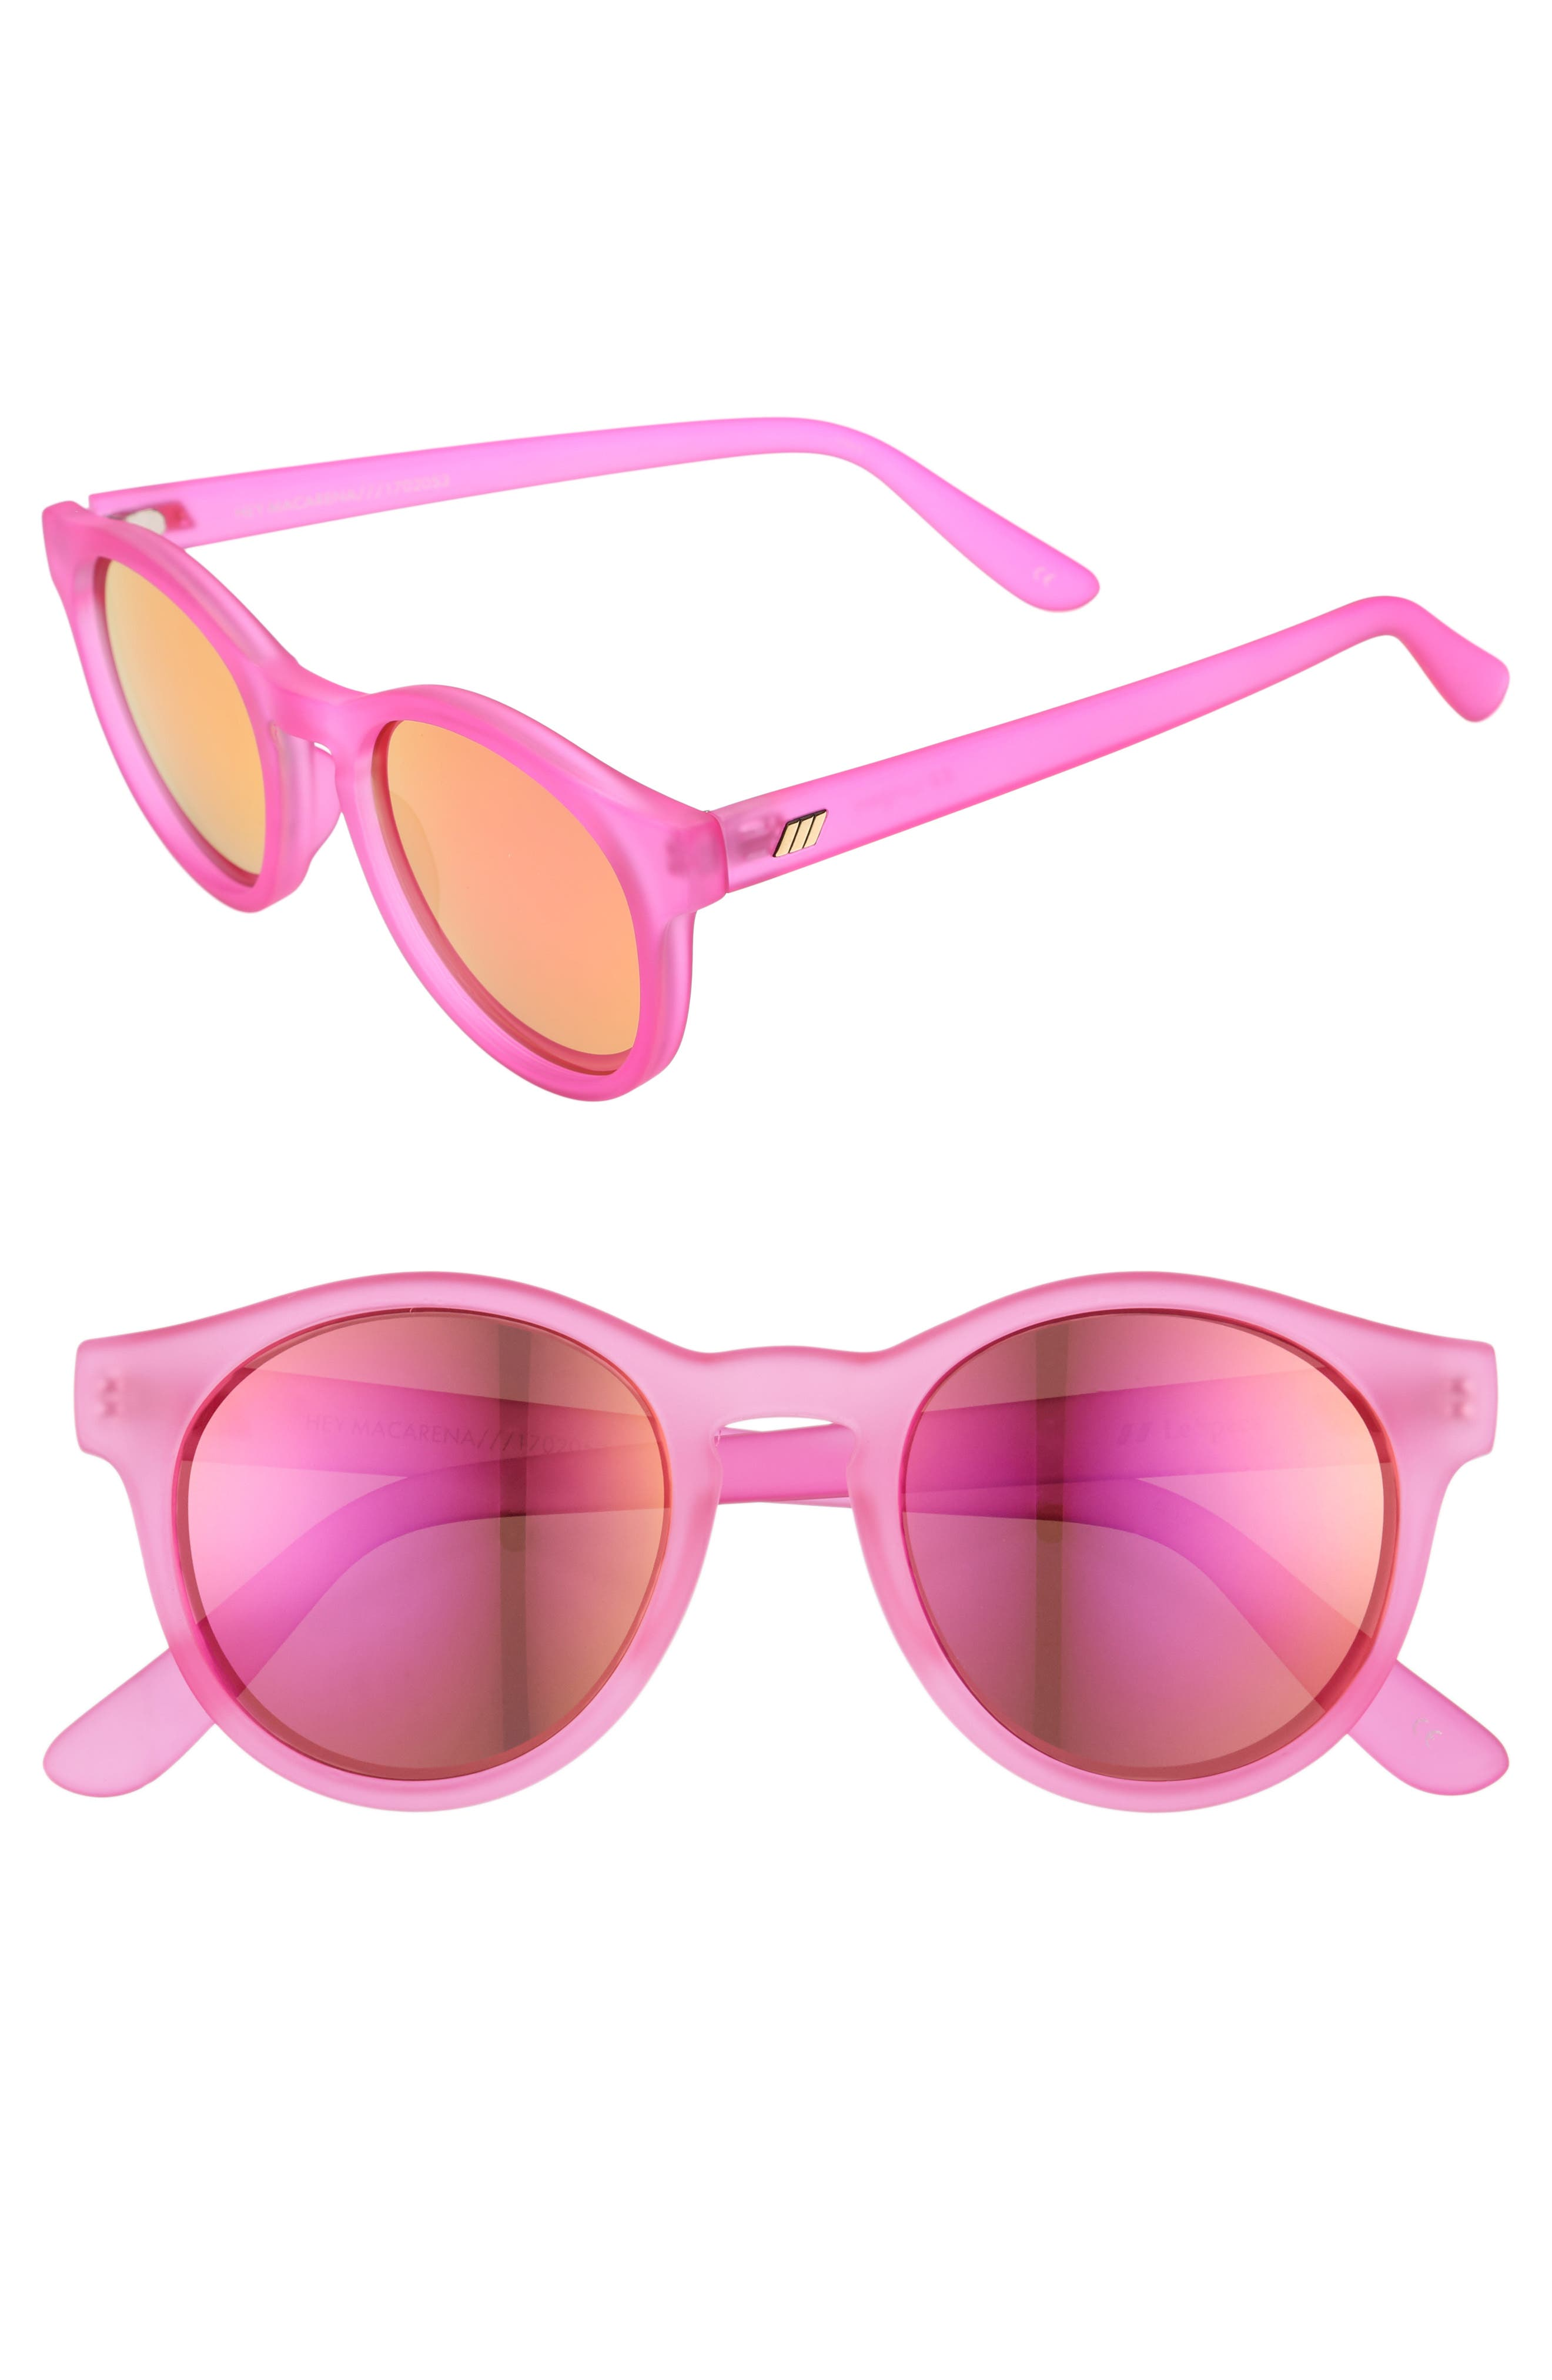 Hey Macarena 51mm Round Sunglasses,                             Main thumbnail 1, color,                             Matte Magenta